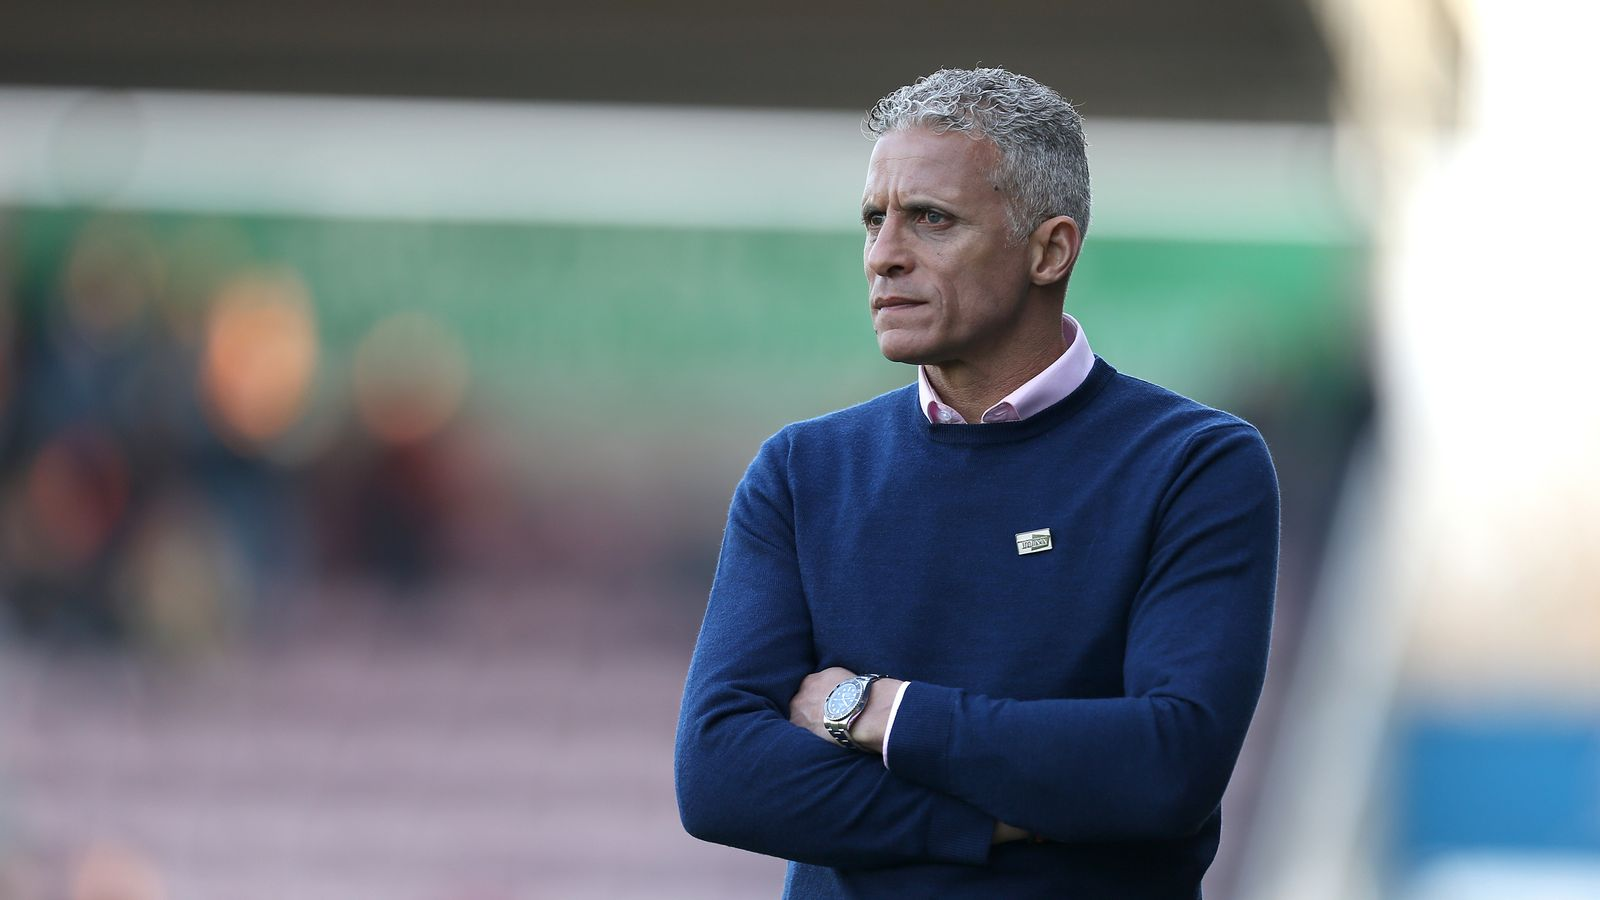 keith curle - photo #34